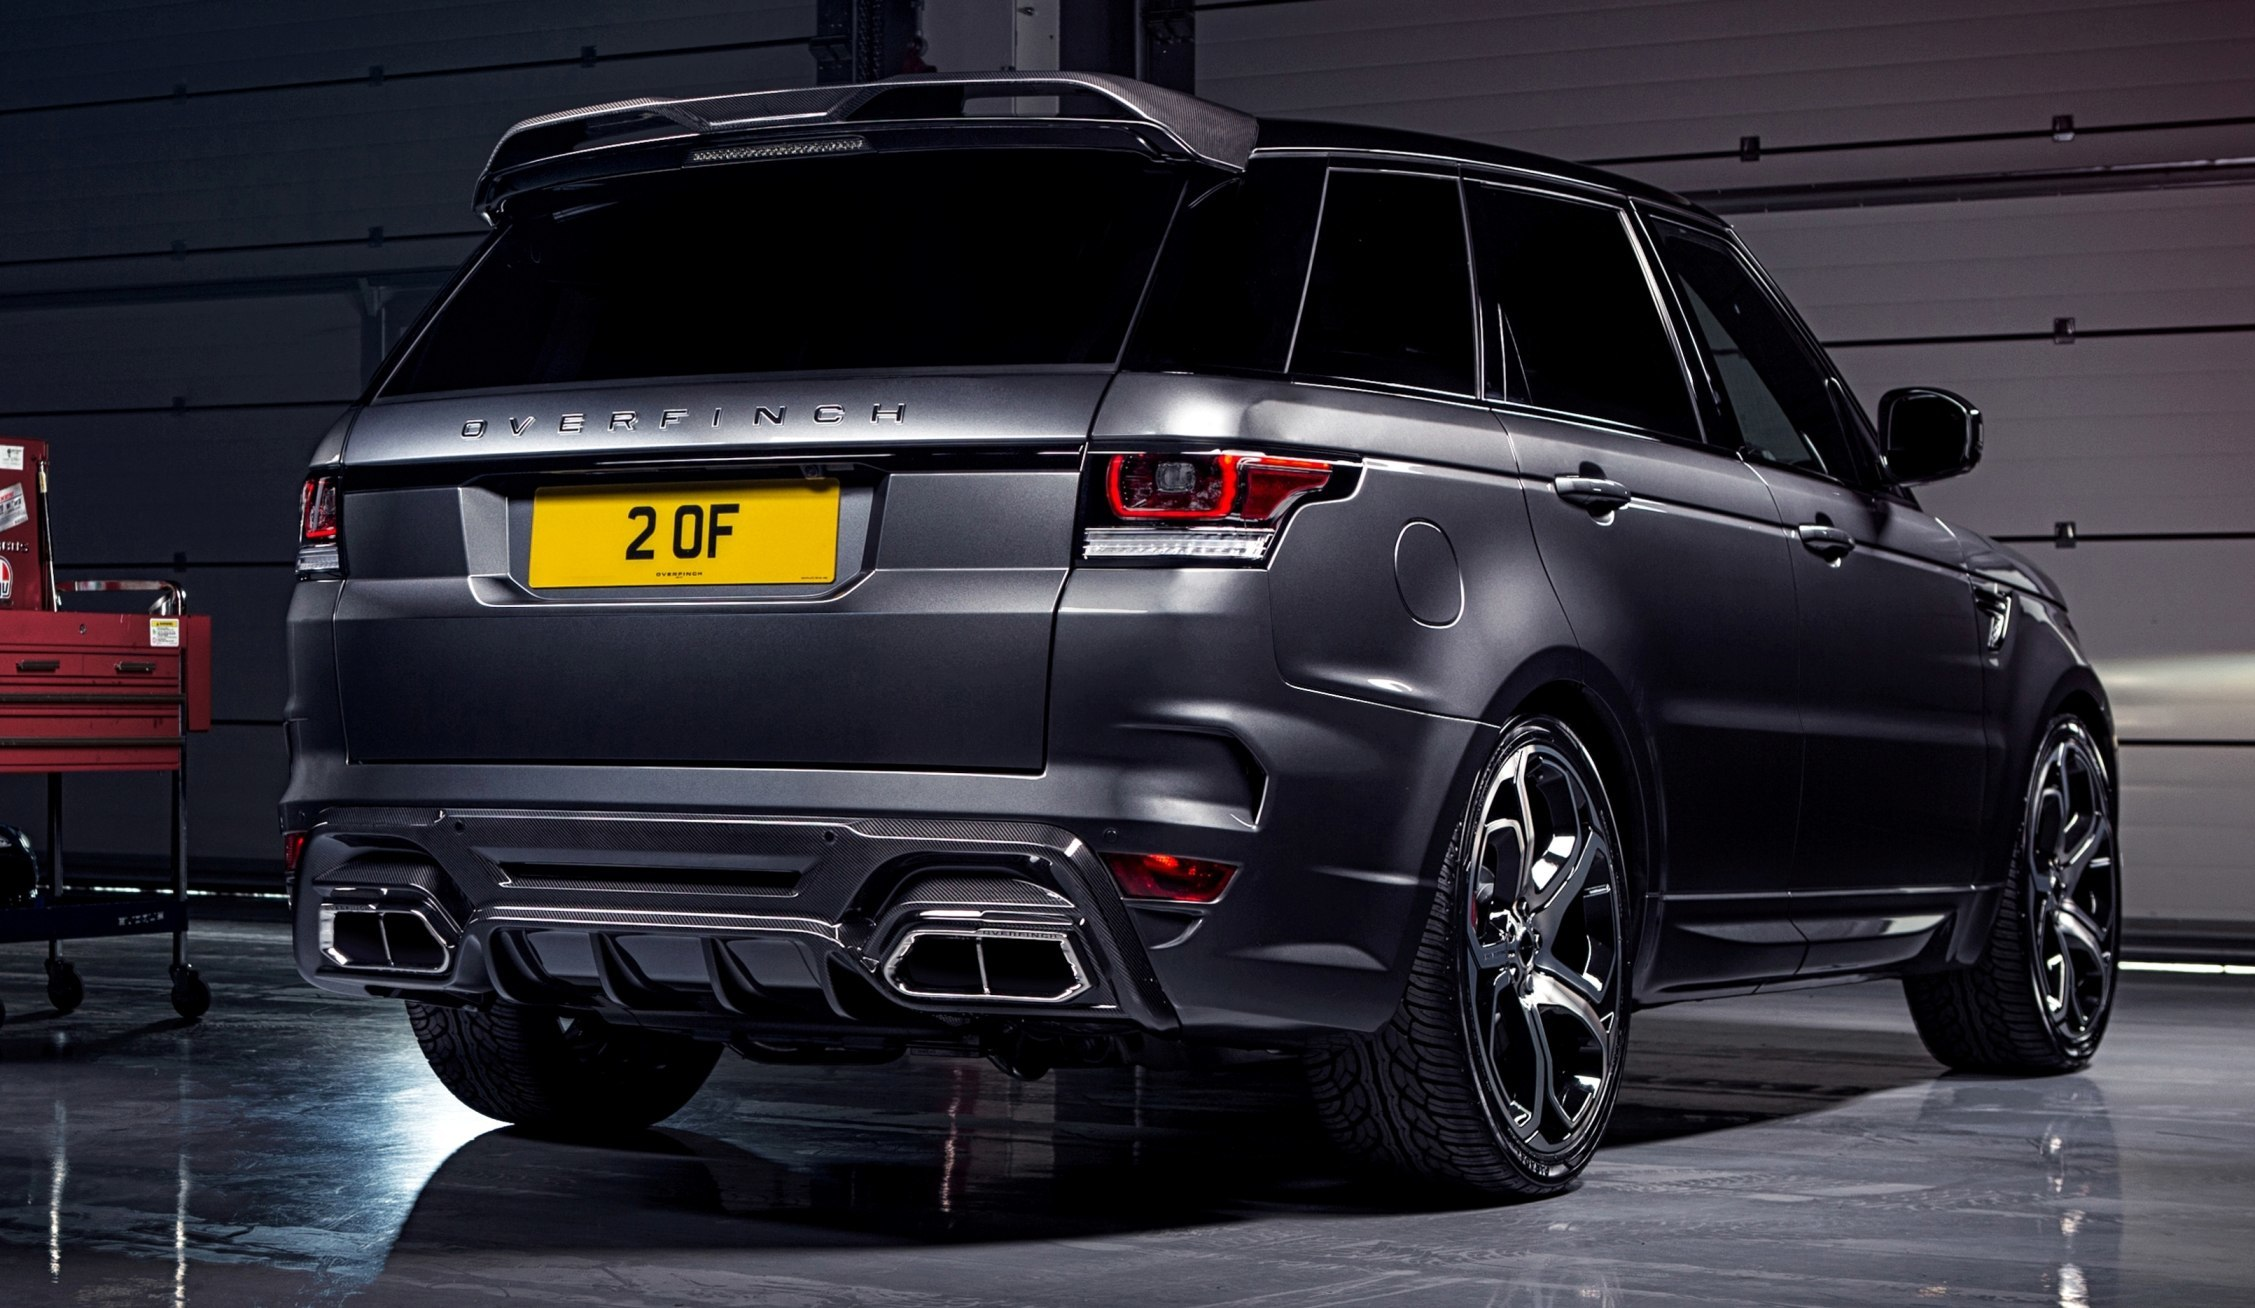 2014 Overfinch Range Rover Sport To Debut at Salon Prive With